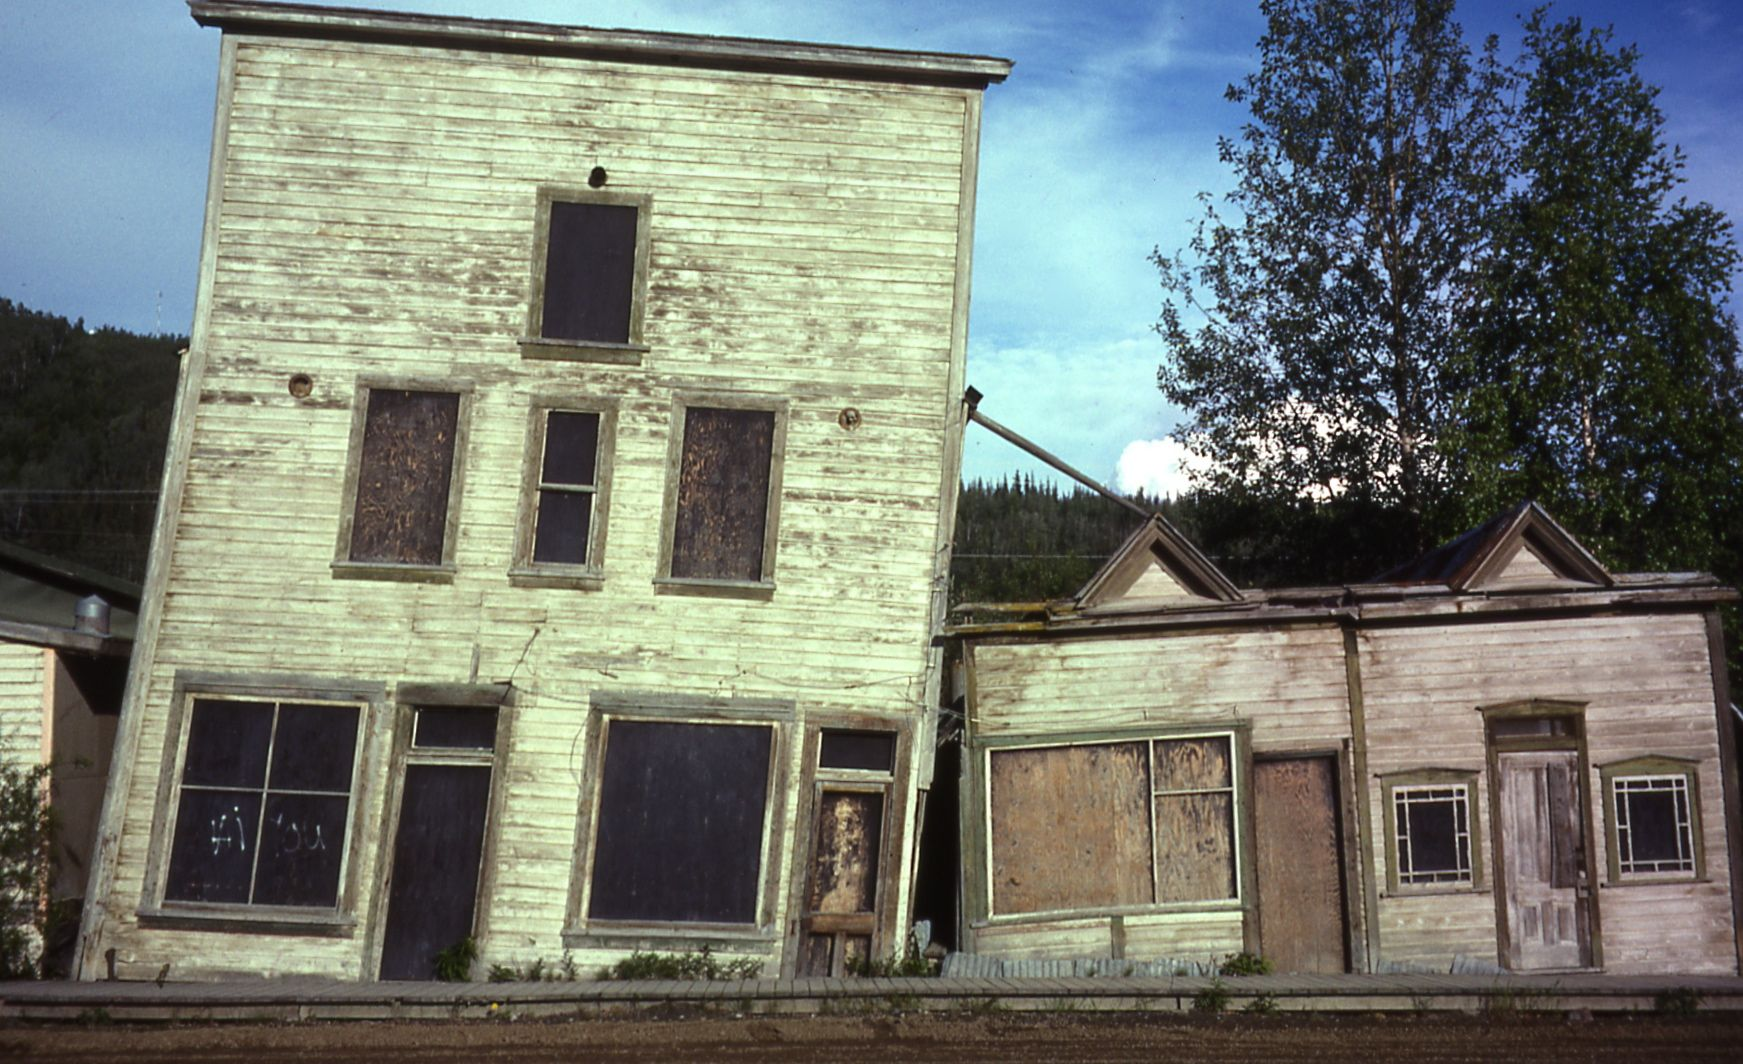 An old building in Dawson, Yukon, warped by thawing permafrost. Photo credit: Antoni Lewkowicz